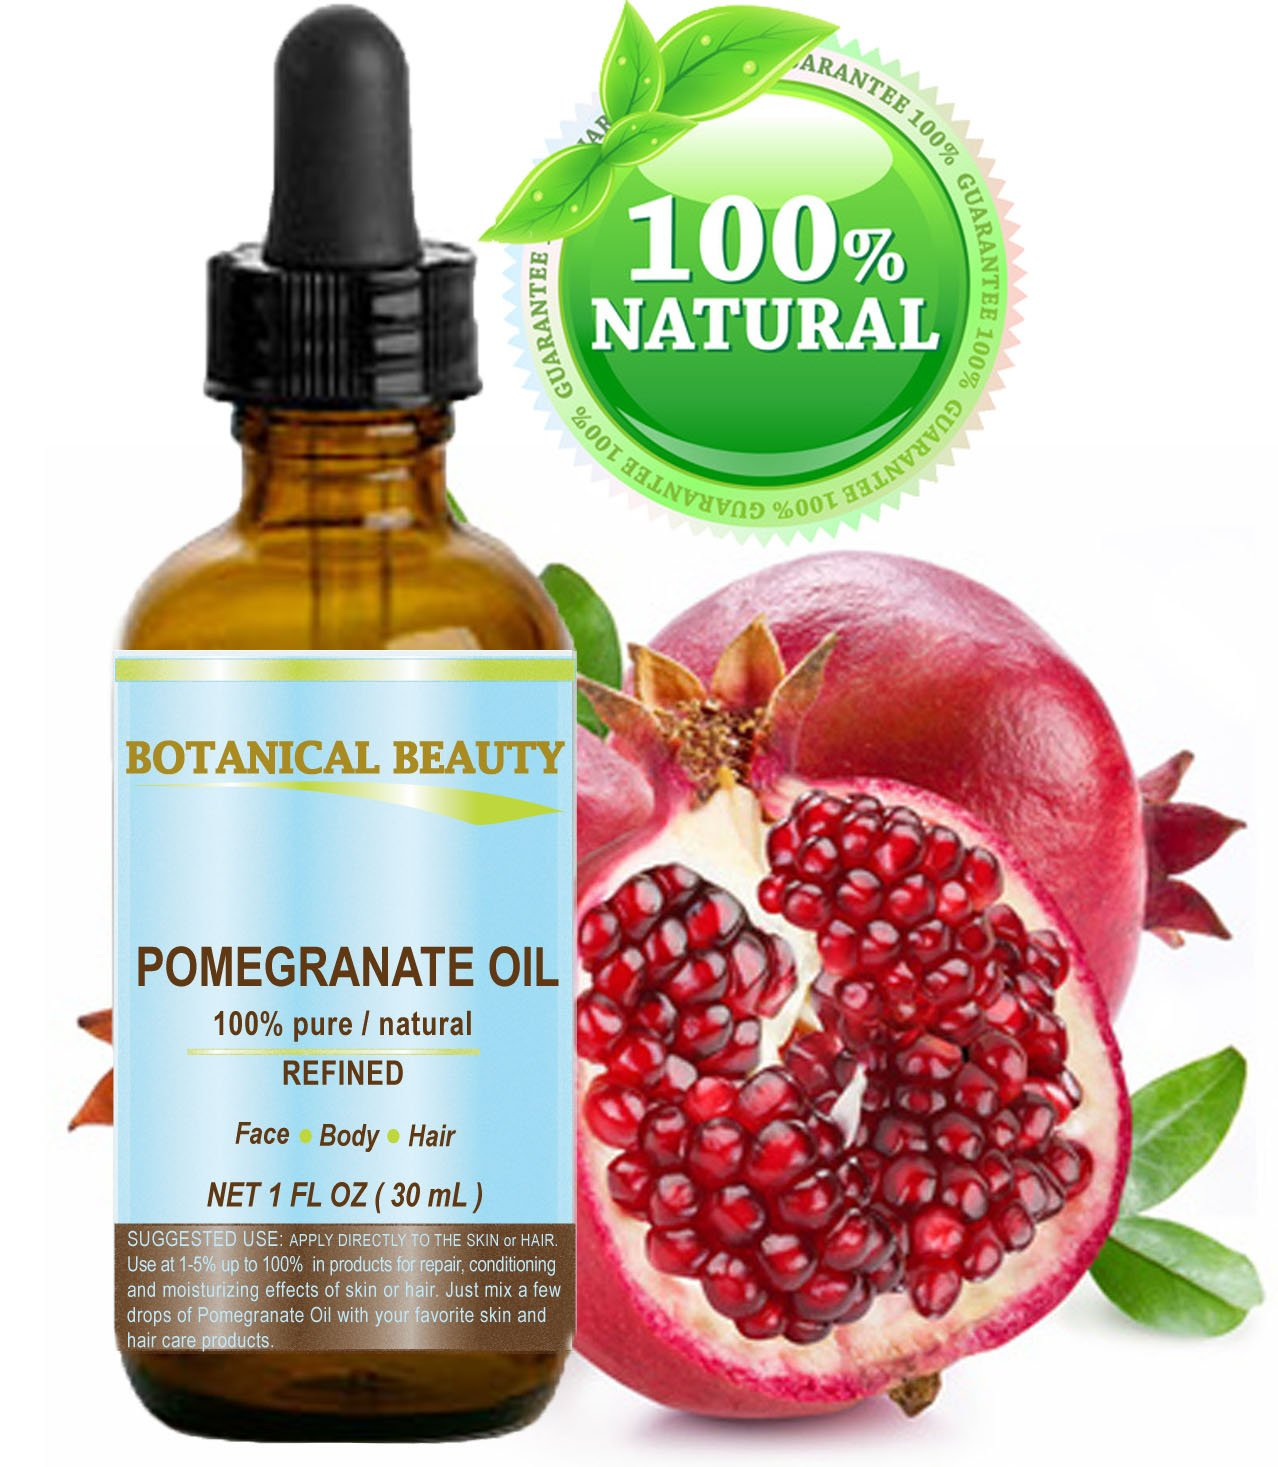 POMEGRANATE OIL 100% Pure, 100% Natural 2oz-60ml. For Face, Hair and Body. Amazing skin care for beautiful, younger-looking skin.